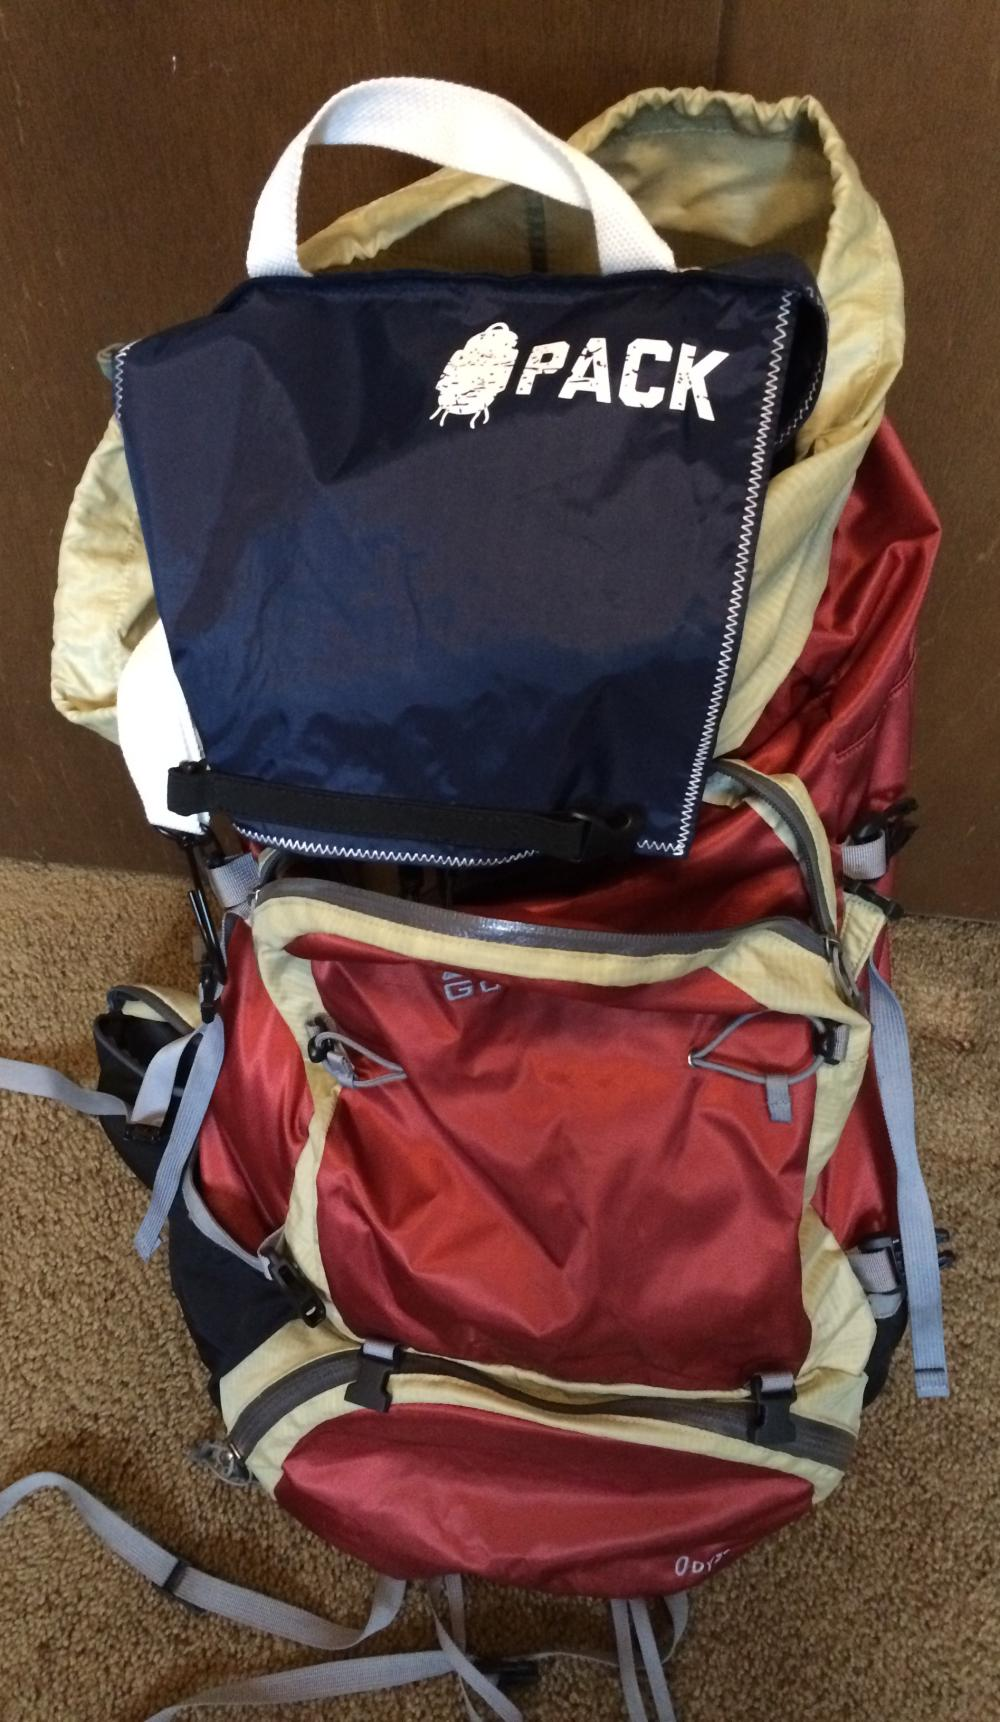 Packing a backpack might require internal organizers, like this navy blue one sitting on an orange and yellow backpack